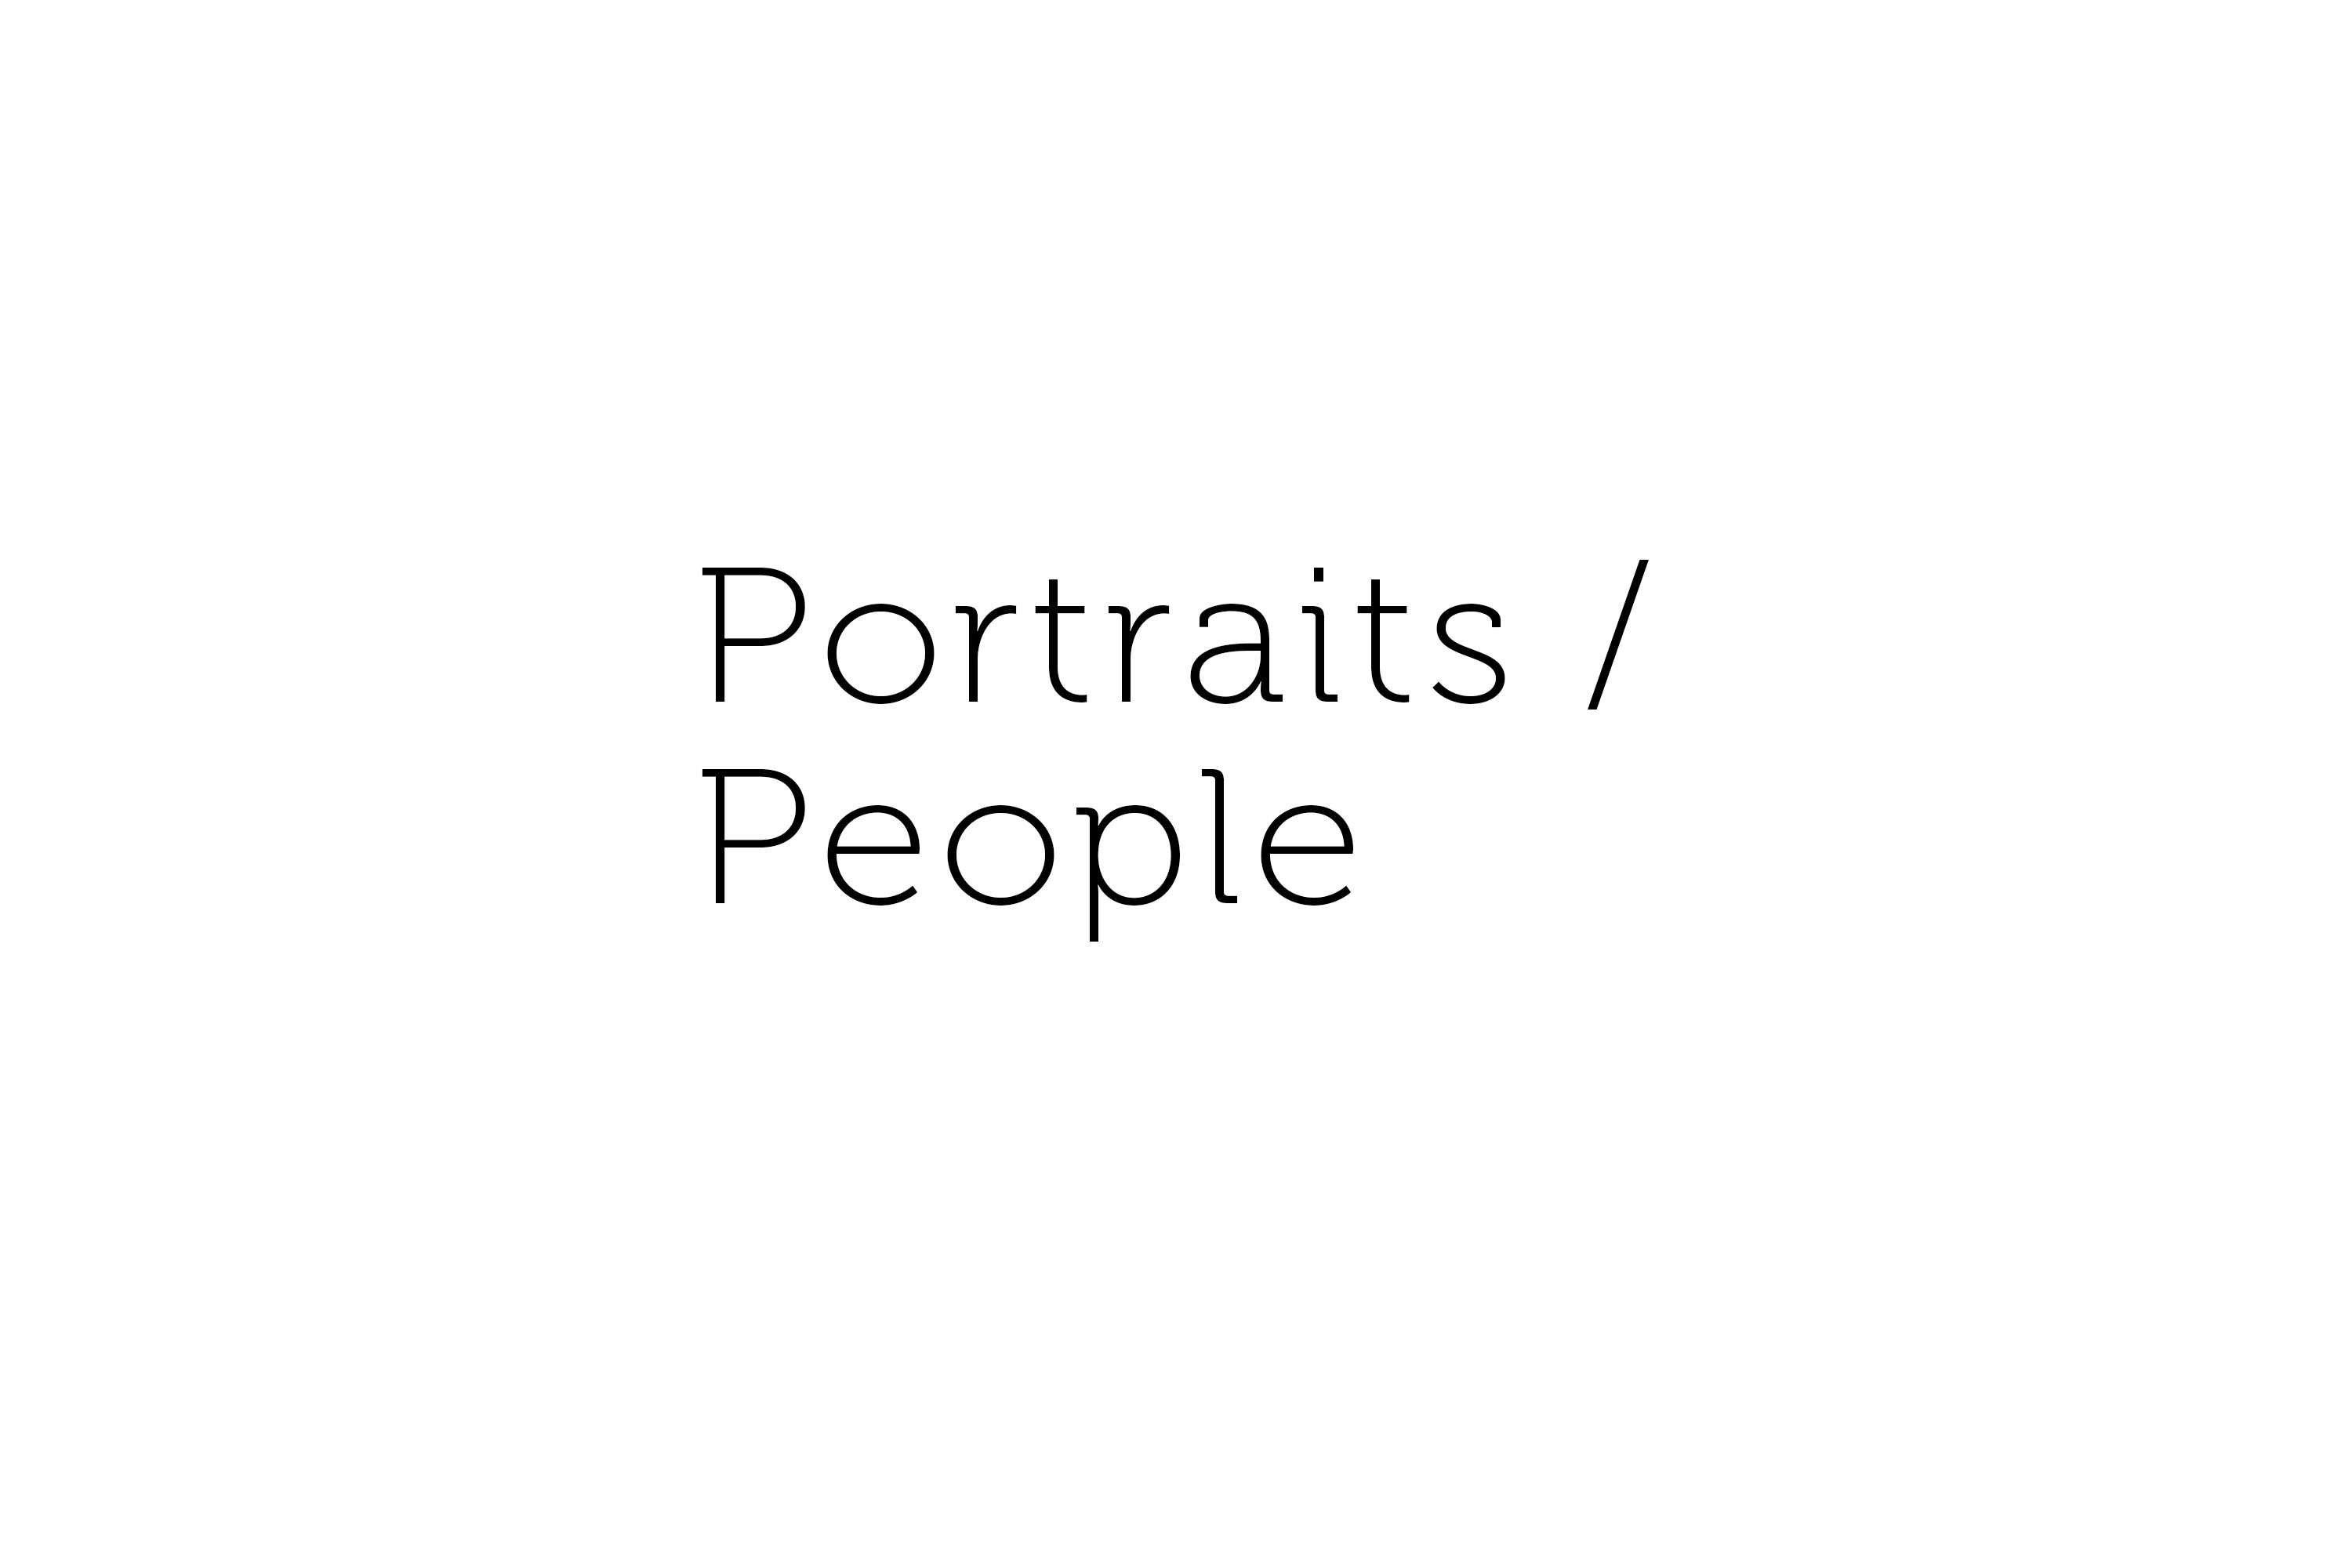 Portraits / People